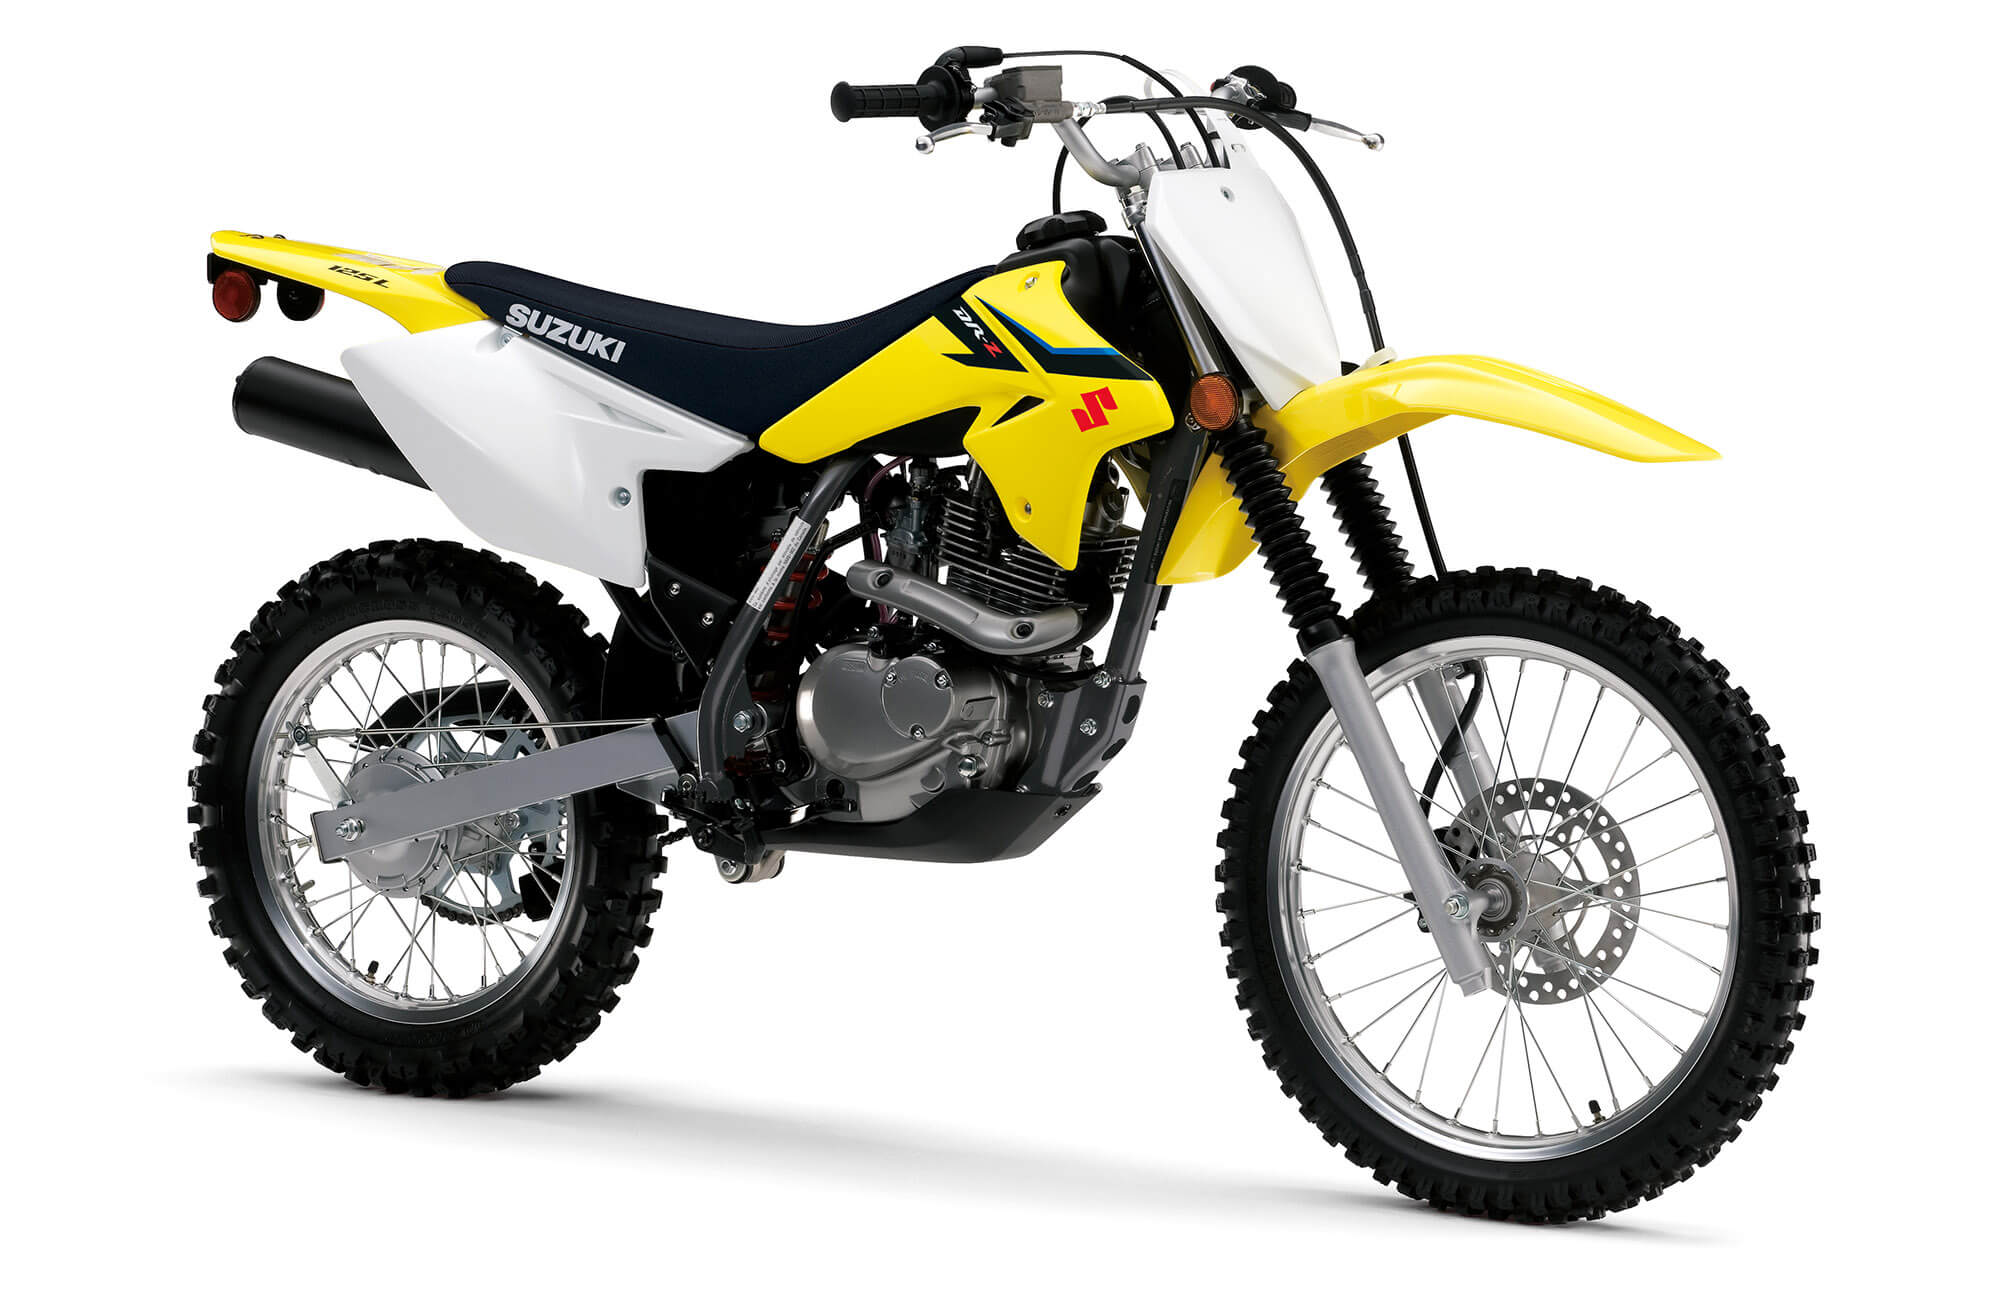 2020-DR-Z125L-yellow-black.jpg